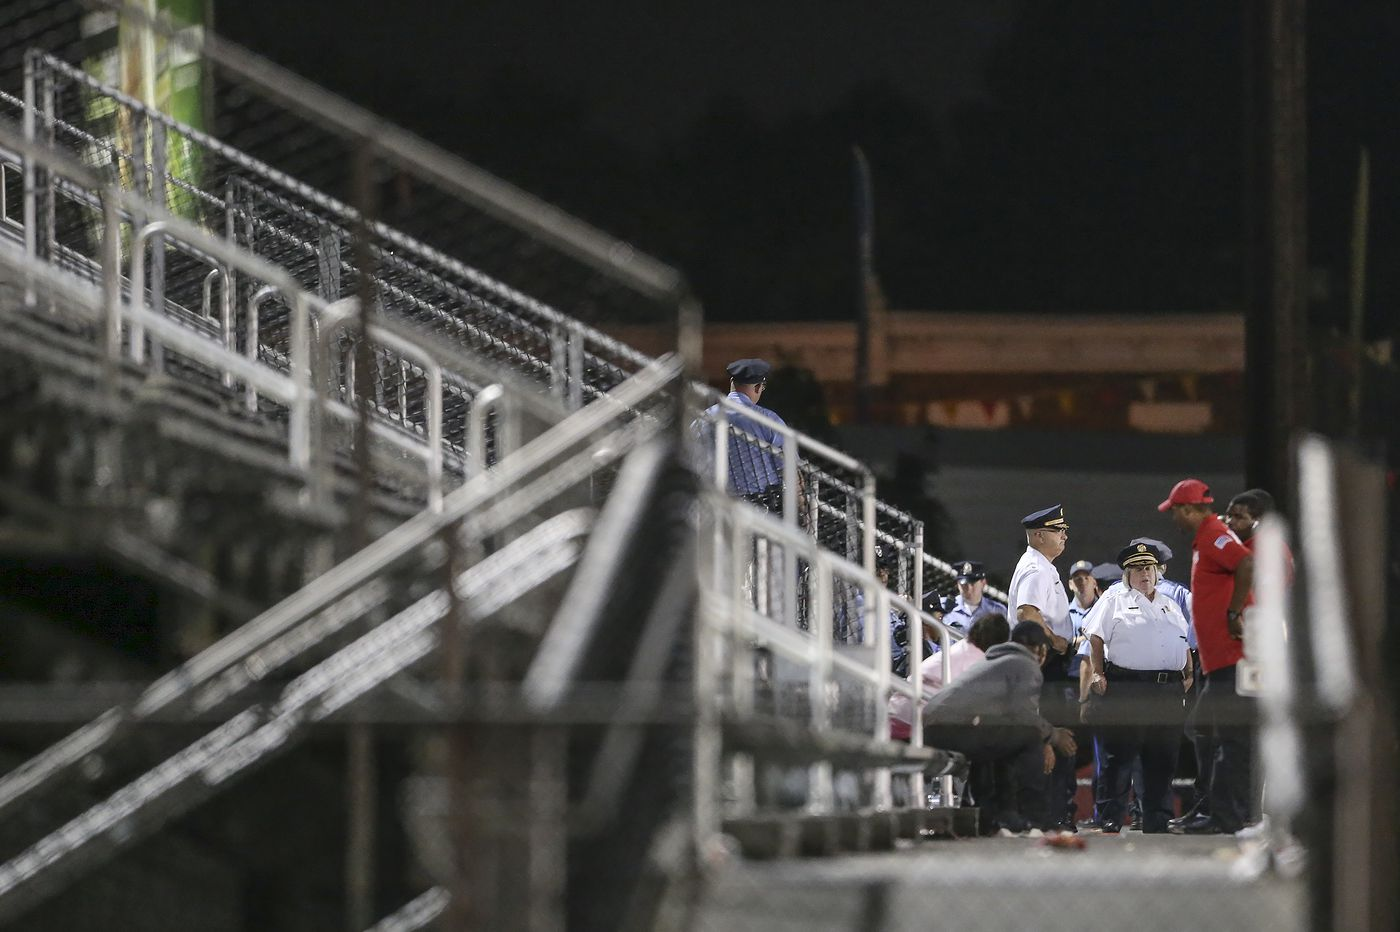 Shooting at high school football game in Philadelphia prompts security review